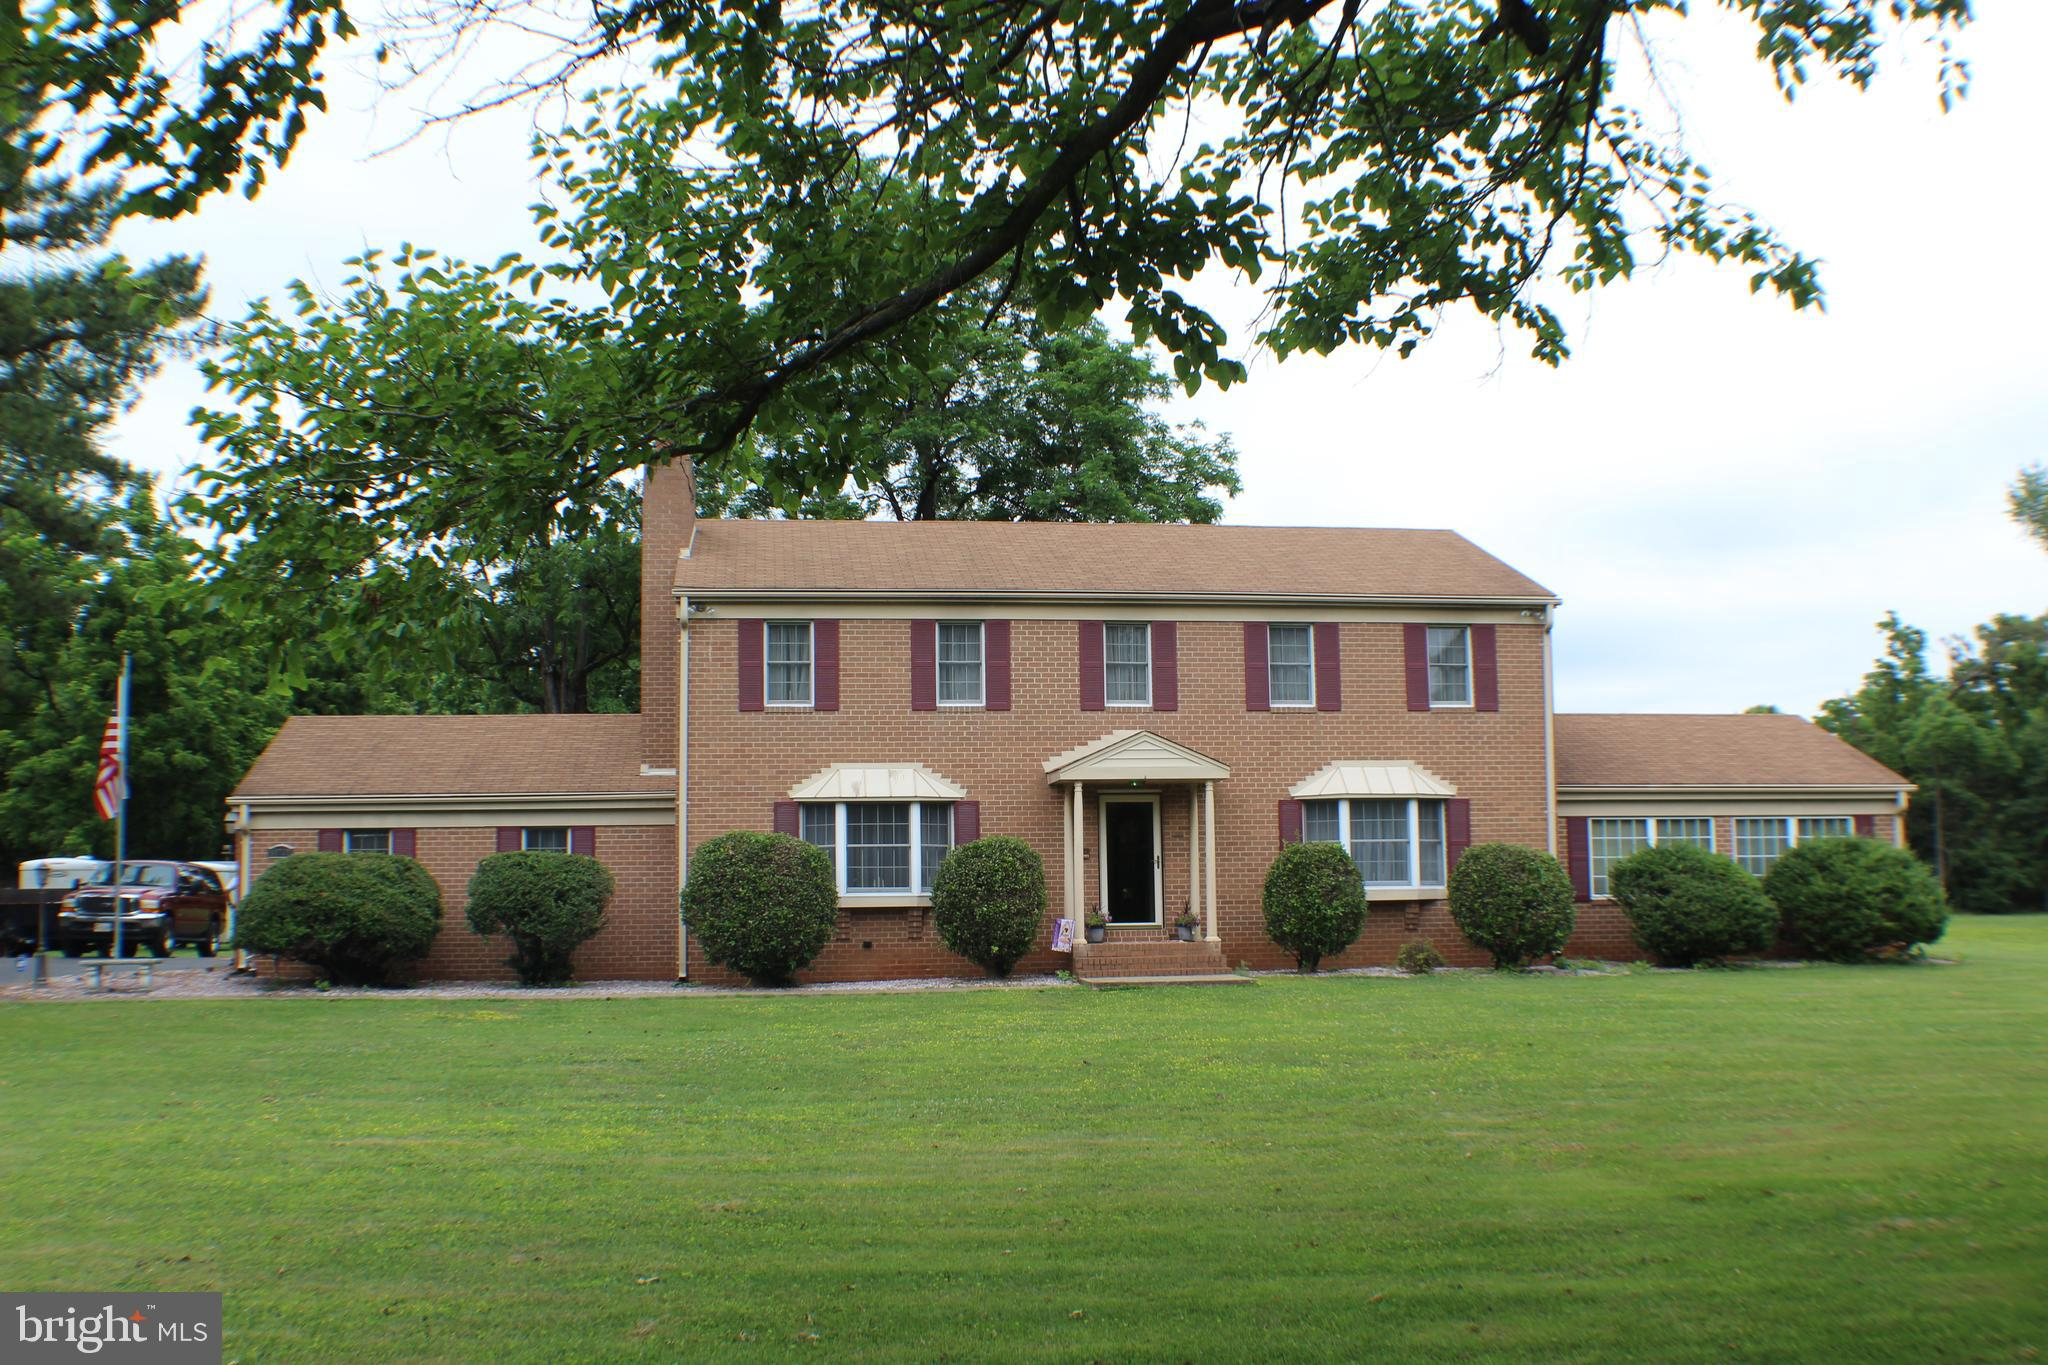 Huge Price Reduction!  Seller is serious. Come see this Fabulous, one of a kind must see home! Come relax and enjoy this beautiful home. You will notice the meticulously maintained exterior, from the home to the lawn and landscaping. This warm and inviting home feels like you're, in the country, but you are actually close to I95, VRE, and John Beach Marina and Yacht Club.  This beautiful all brick home features gleaming hardwood floors and large family room addition, for entertaining, The upper level features 4 Bedrooms and 2 Baths.  The Master Suite includes a wood fireplace! Main level includes Country Kitchen with eat in area, Living Room, Formal Dining Room, and Sitting Room.  Head downstairs to a large recreation room and storage area, with many possibilities. Do you like to entertain?  How about a gazebo that once graced the Mamie Davis Park in historic Occoquan (see pictures).  There is plenty of space with 2 gazebos, patio and huge backyard for entertaining. 5 Sheds (2 with electricity), Andersen Windows and much more.